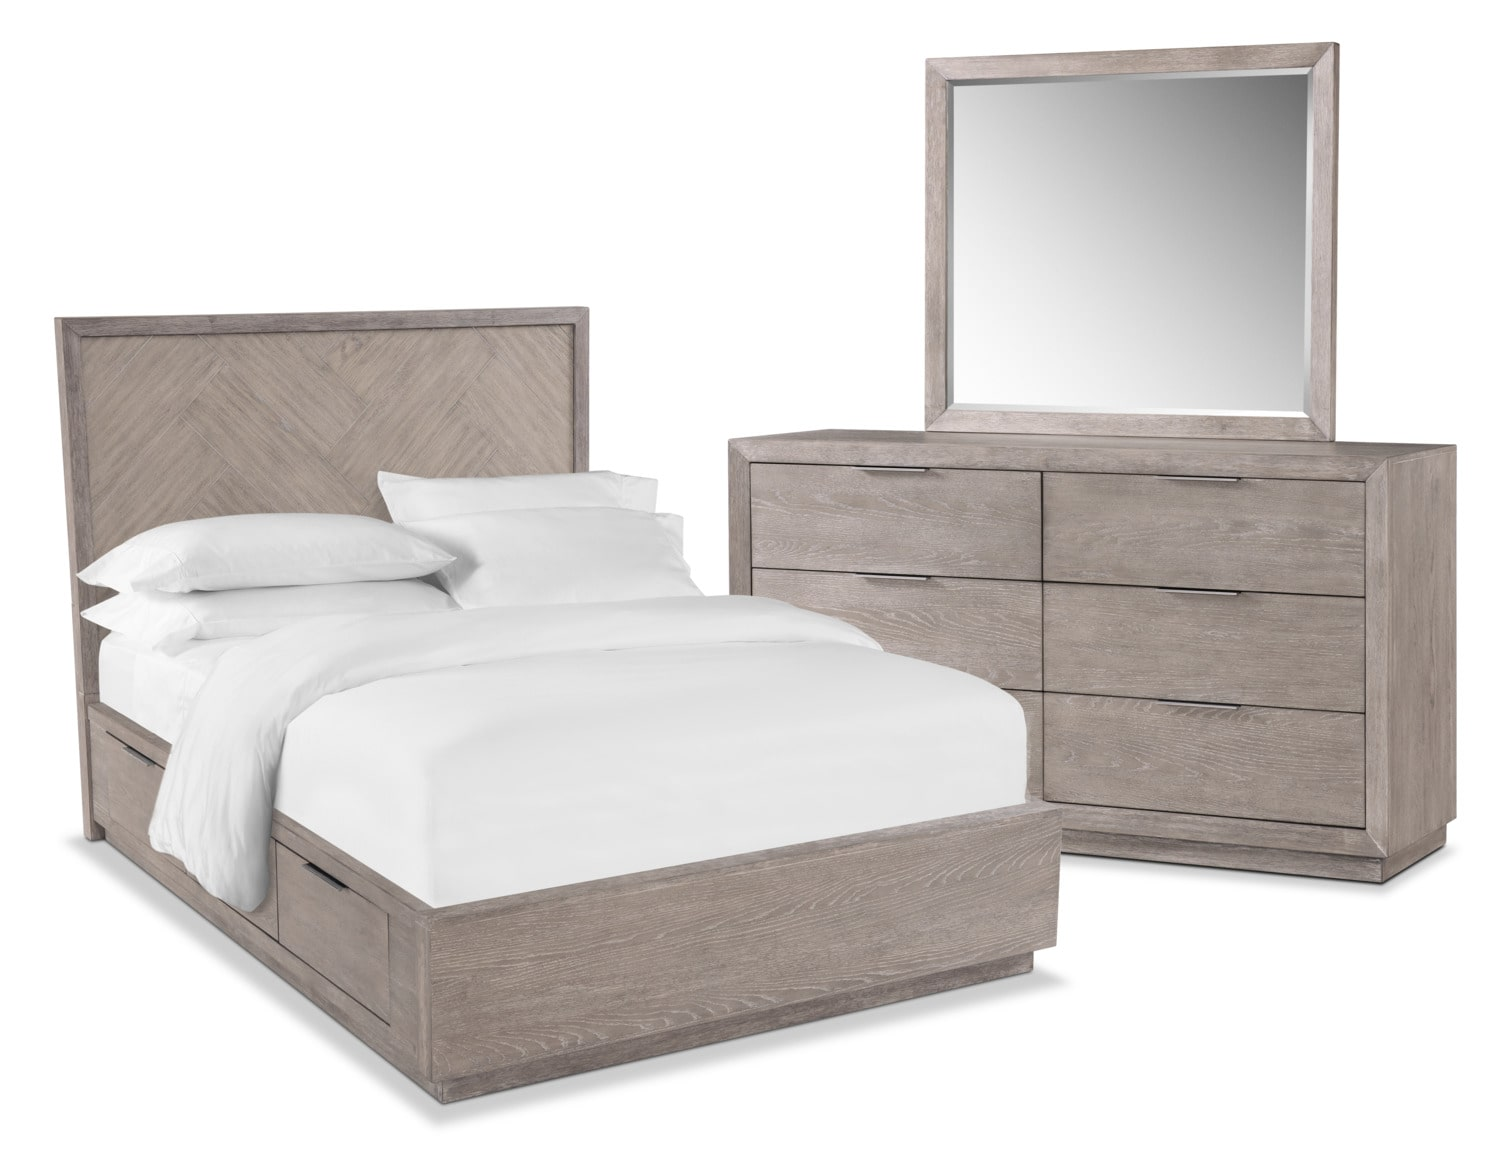 Bedroom Furniture - Zen 5-Piece Storage Bedroom Set with Dresser and Mirror